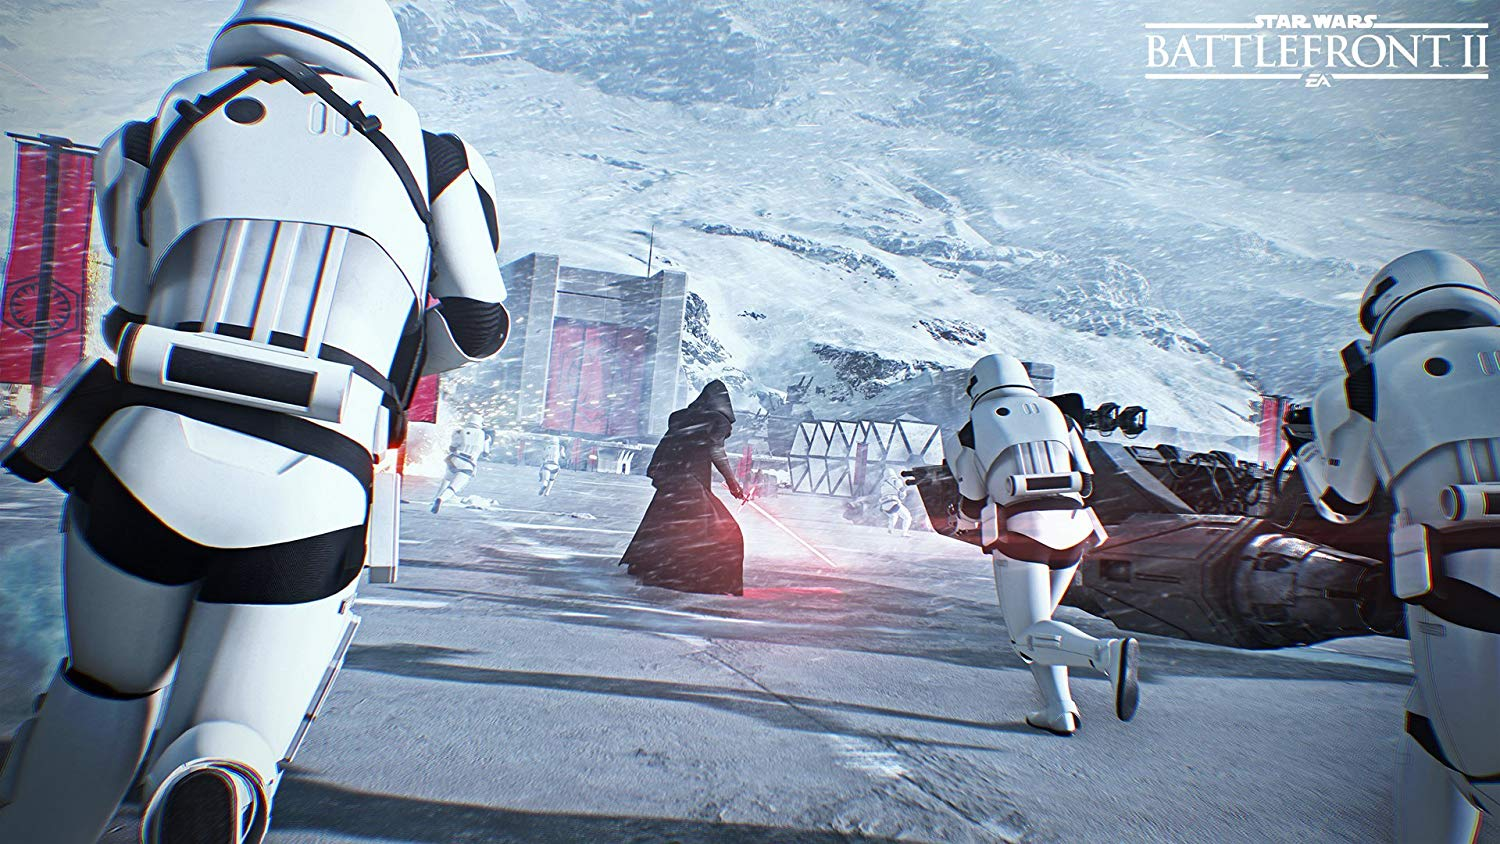 Starwars Battlefront II - PlayStation 4